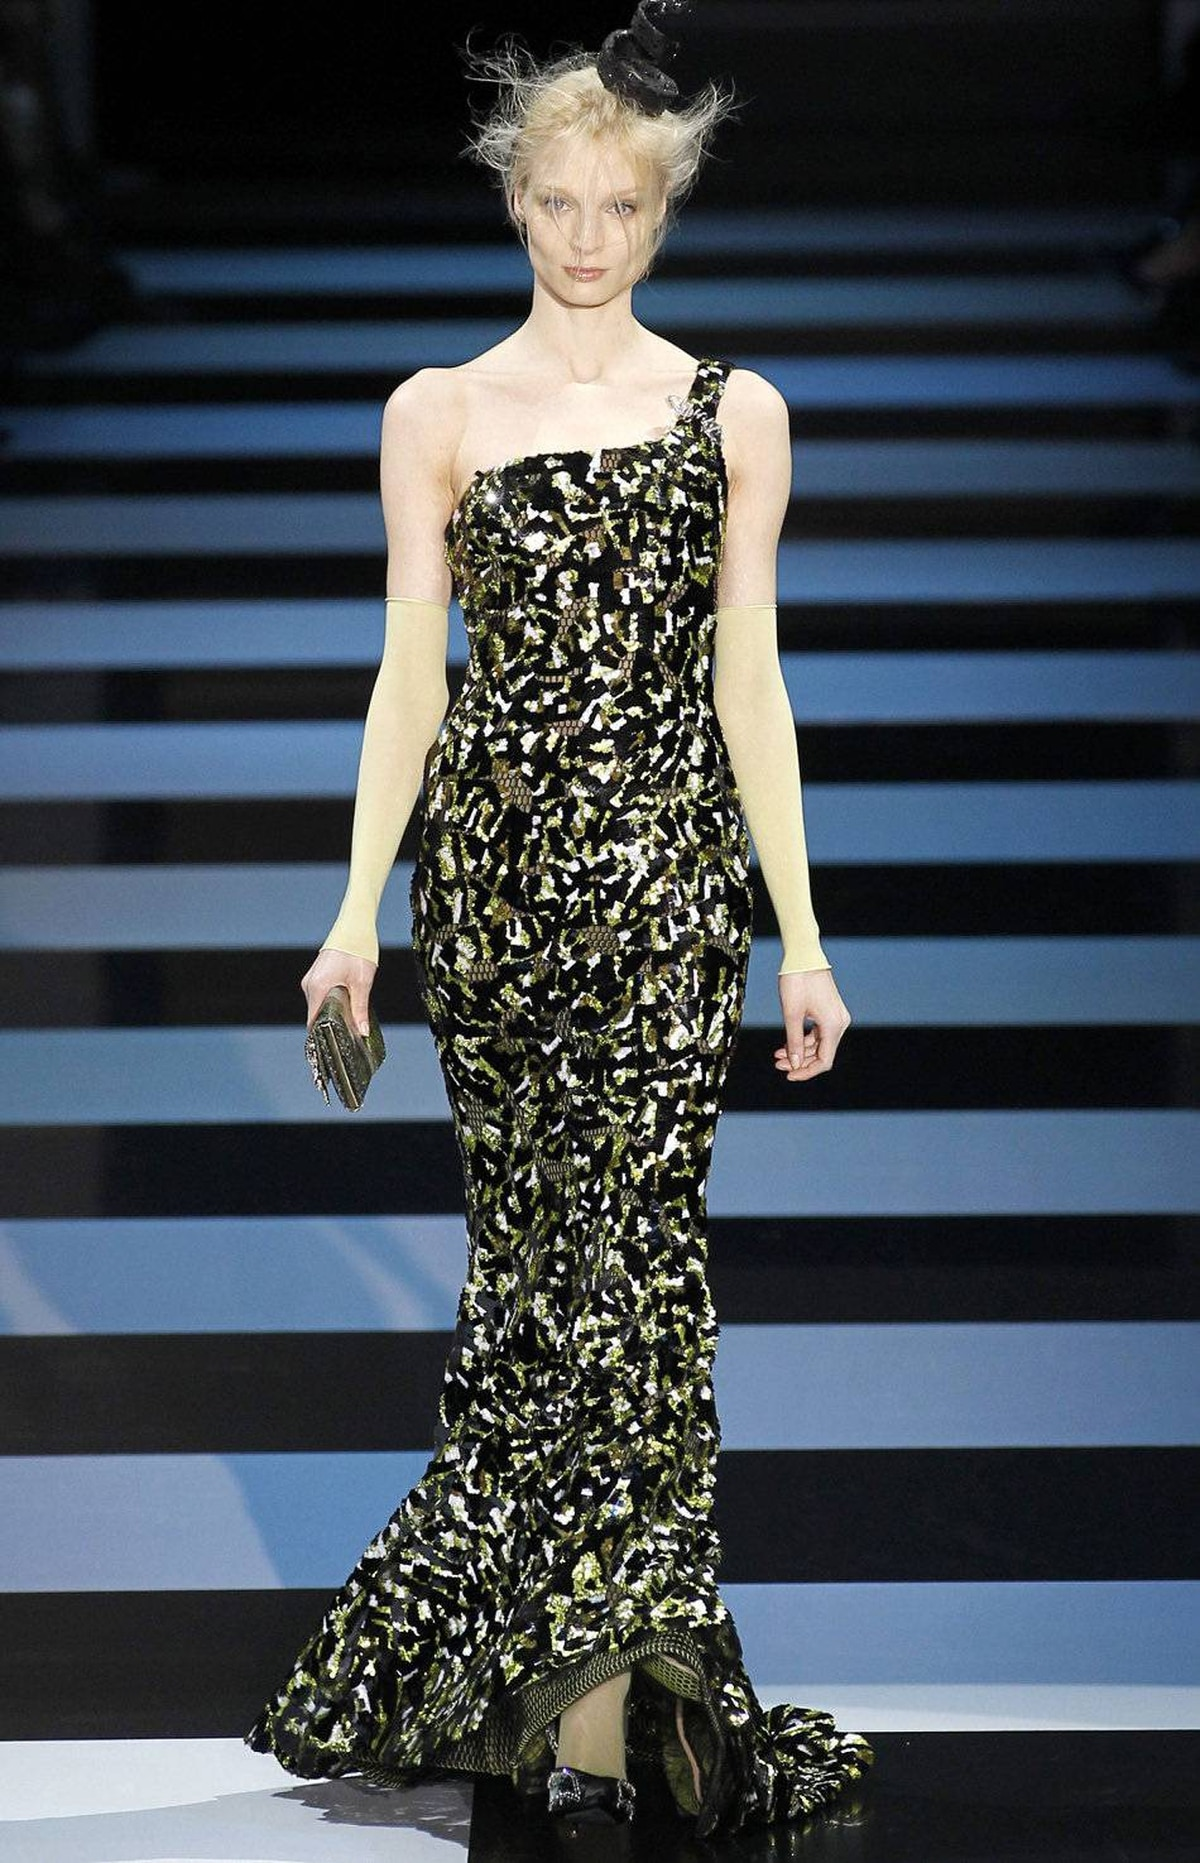 Minutes before the Giorgio Armani Privée show started, applause erupted from the front row. Actress and guest Jessica Chastain had just received news about her Oscar nomination (for The Help). So if it wasn't before, the show became a reconnaissance mission. Could this paillette-covered mermaid dress be the one?